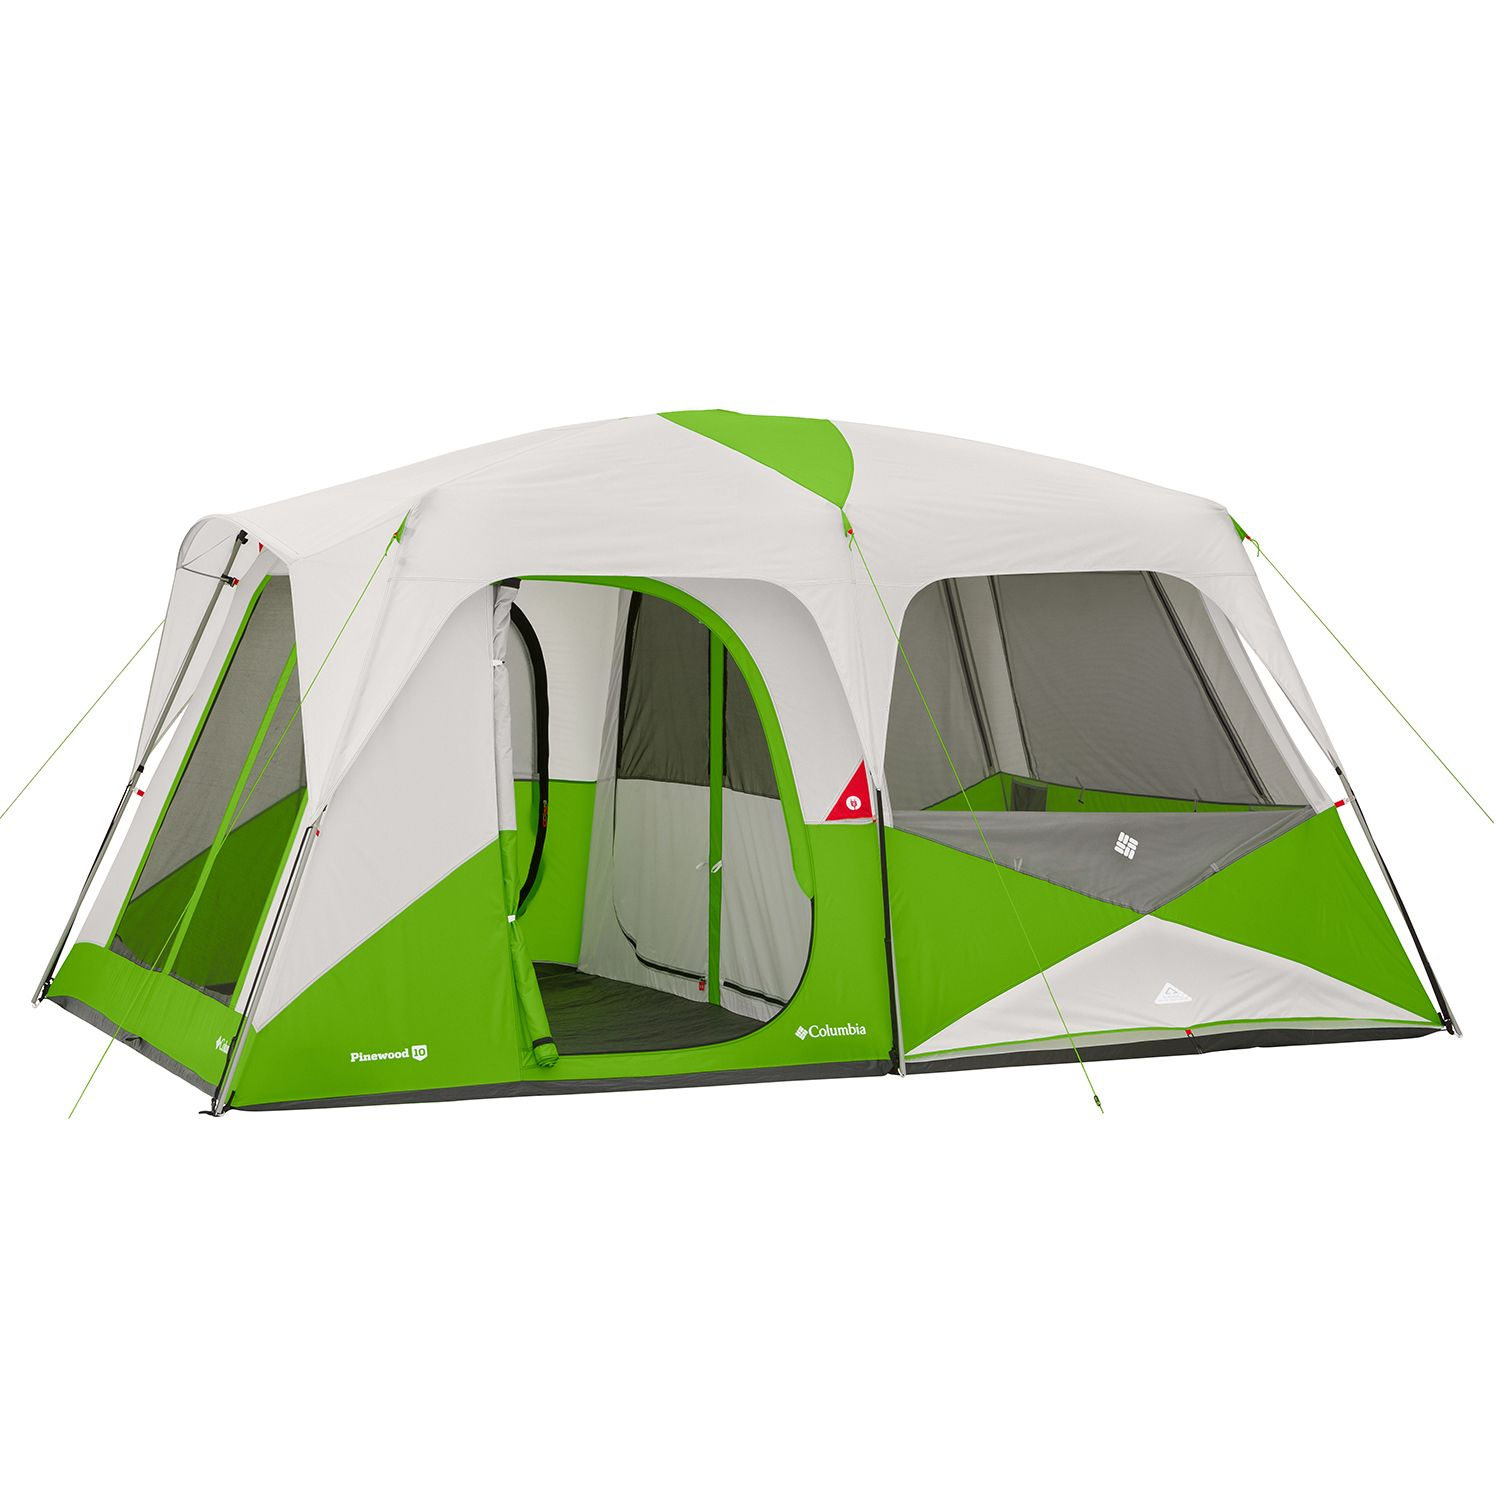 Columbia 10-Person Dome Tent  sc 1 st  Kohlu0027s & Camping u0026 Hiking Tents - Outdoor Recreation Sports u0026 Fitness | Kohlu0027s